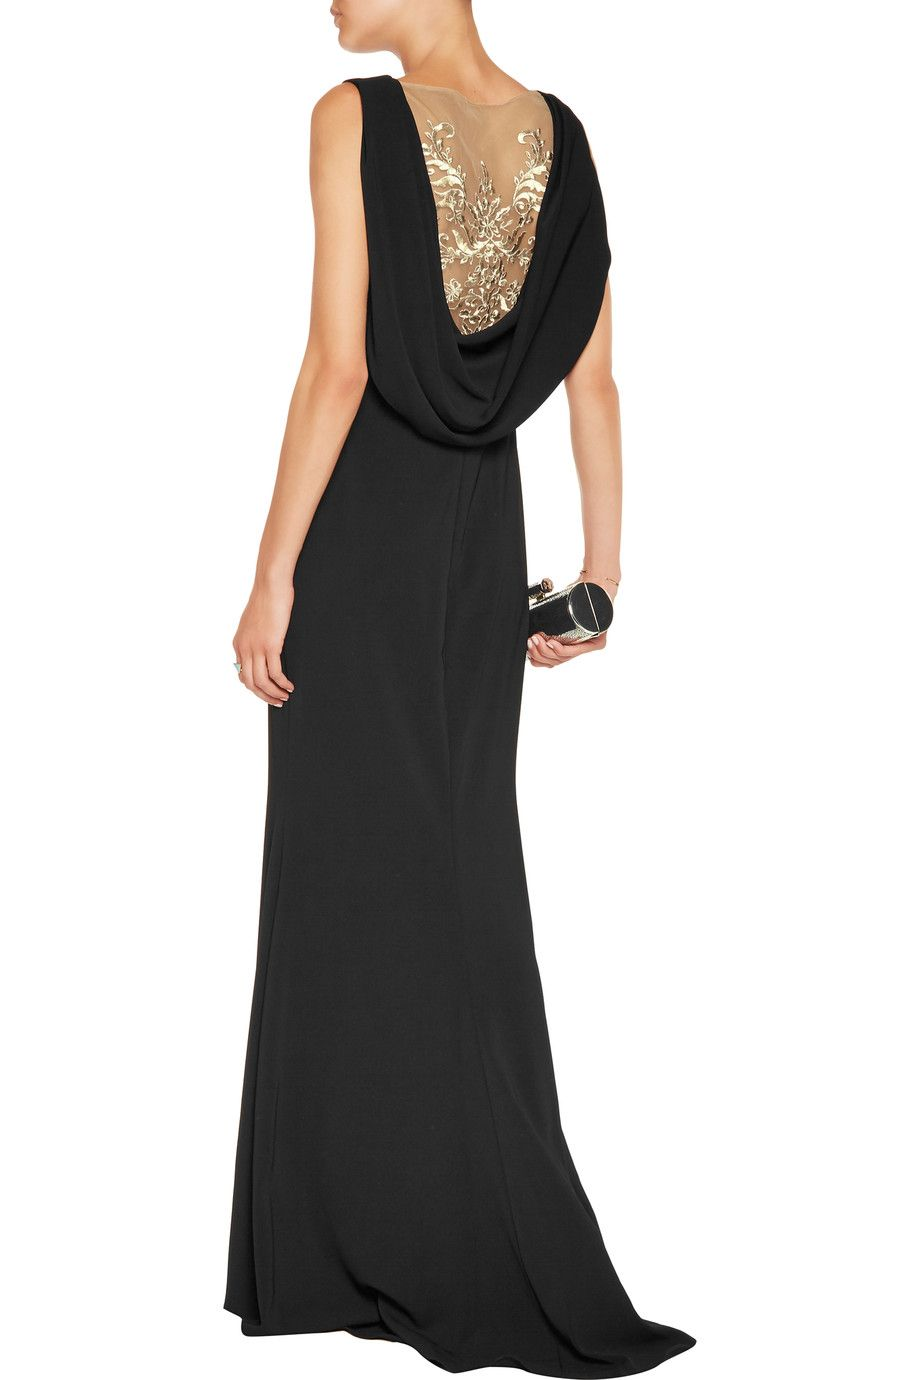 Shop On Sale Marchesa Notte Draped Crepe Gown Browse Other Discount